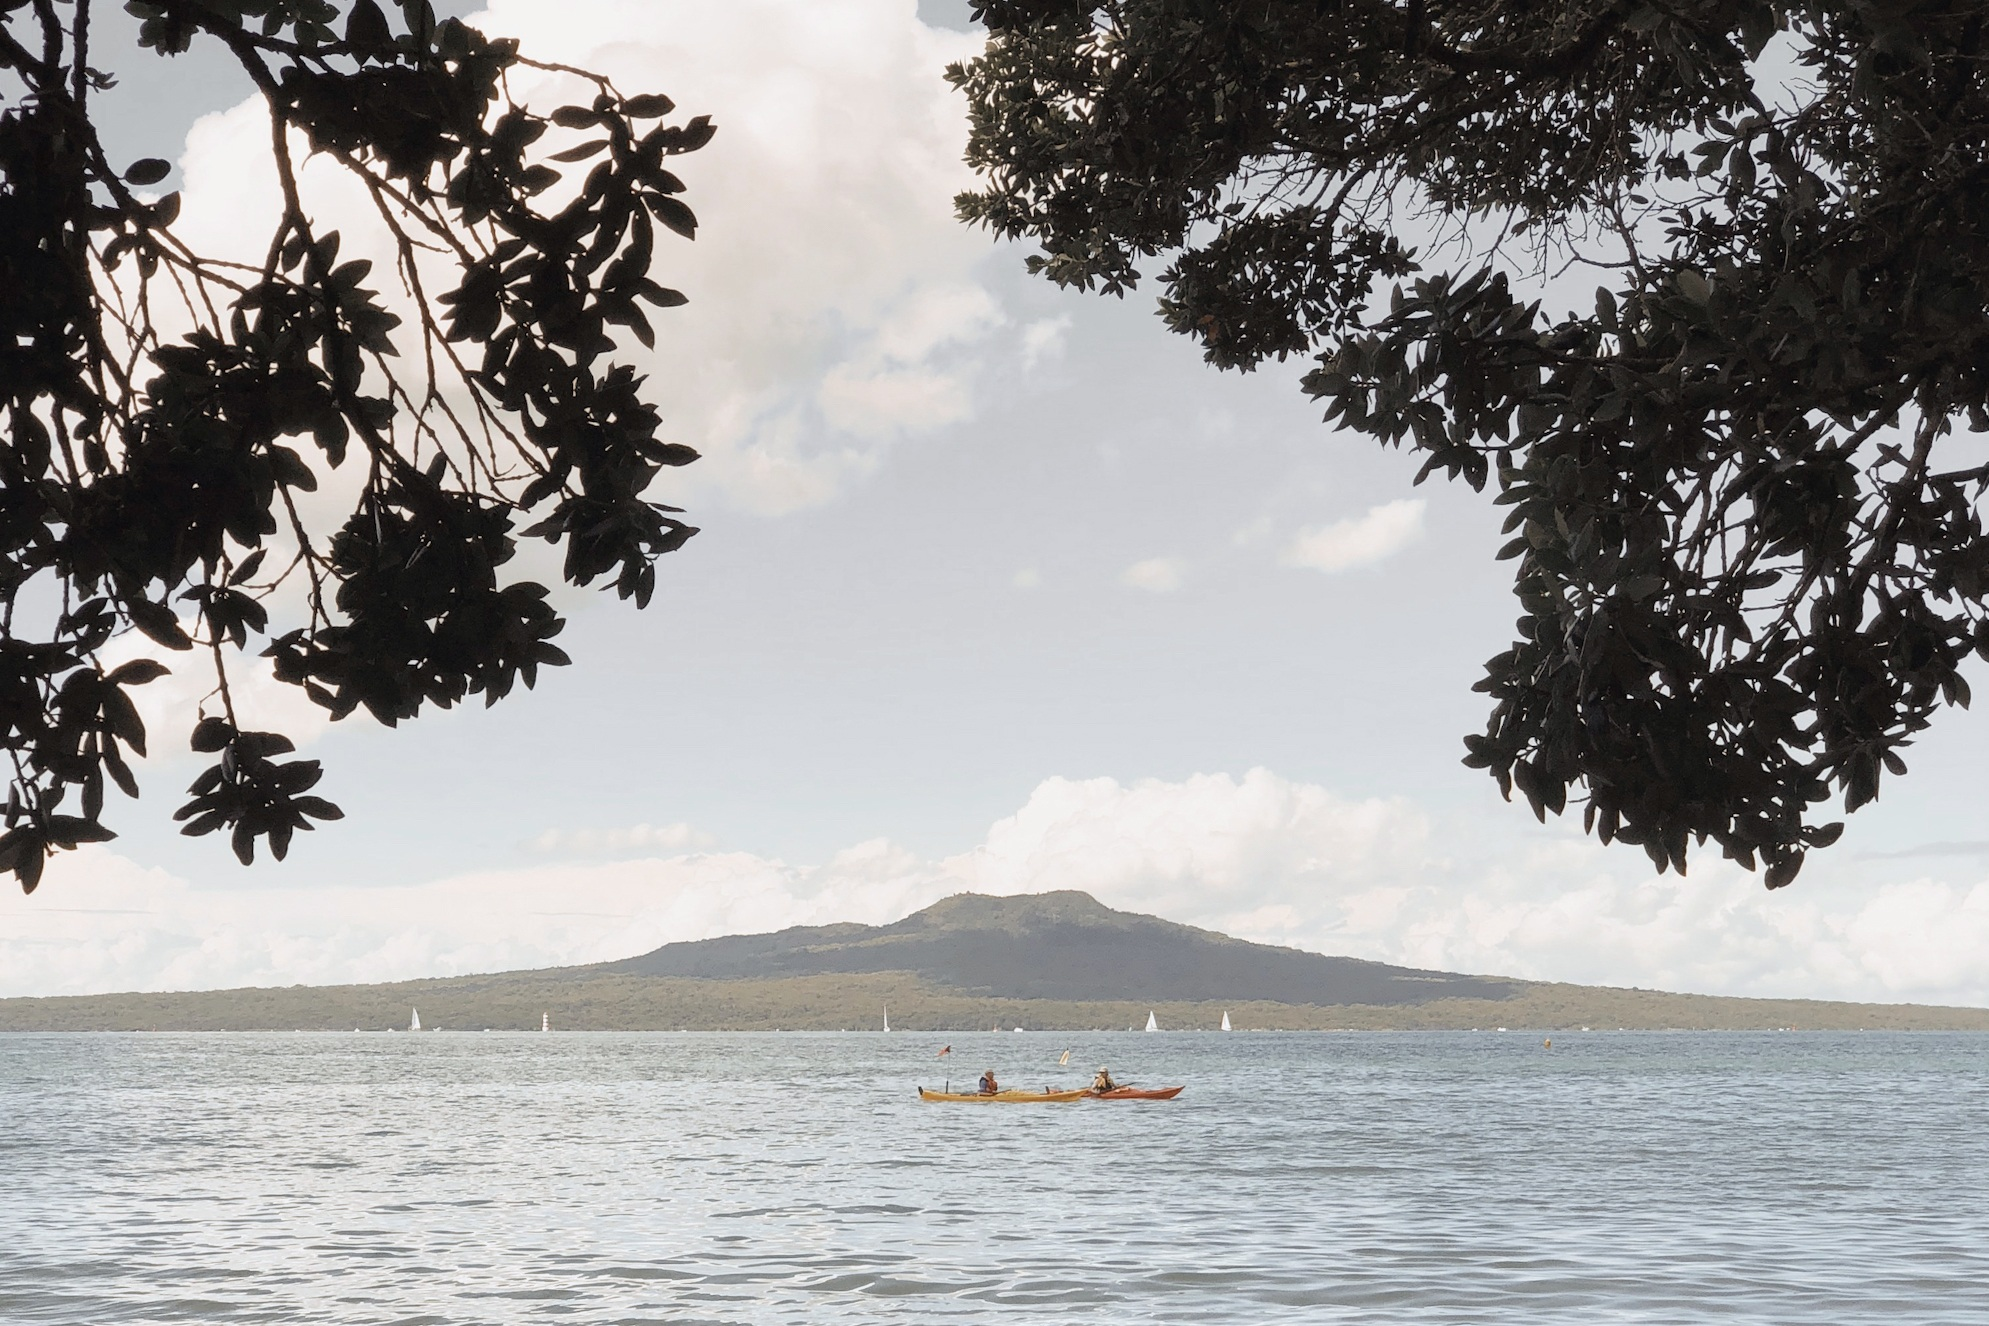 Takapuna - TravelAuckland, New ZealandAlong the historic lava beach trail, two pōhutukawa trees perfectly frame a mesmerising view of the iconic Rangitoto Island across the Hauraki Gulf. Paddle board or kayak at the beach or choose to relax by Lake Pupuke, Auckland's only fresh water lake. Stroll the Sunday markets, take in a live show and enjoy the ever-welcoming hospitality.